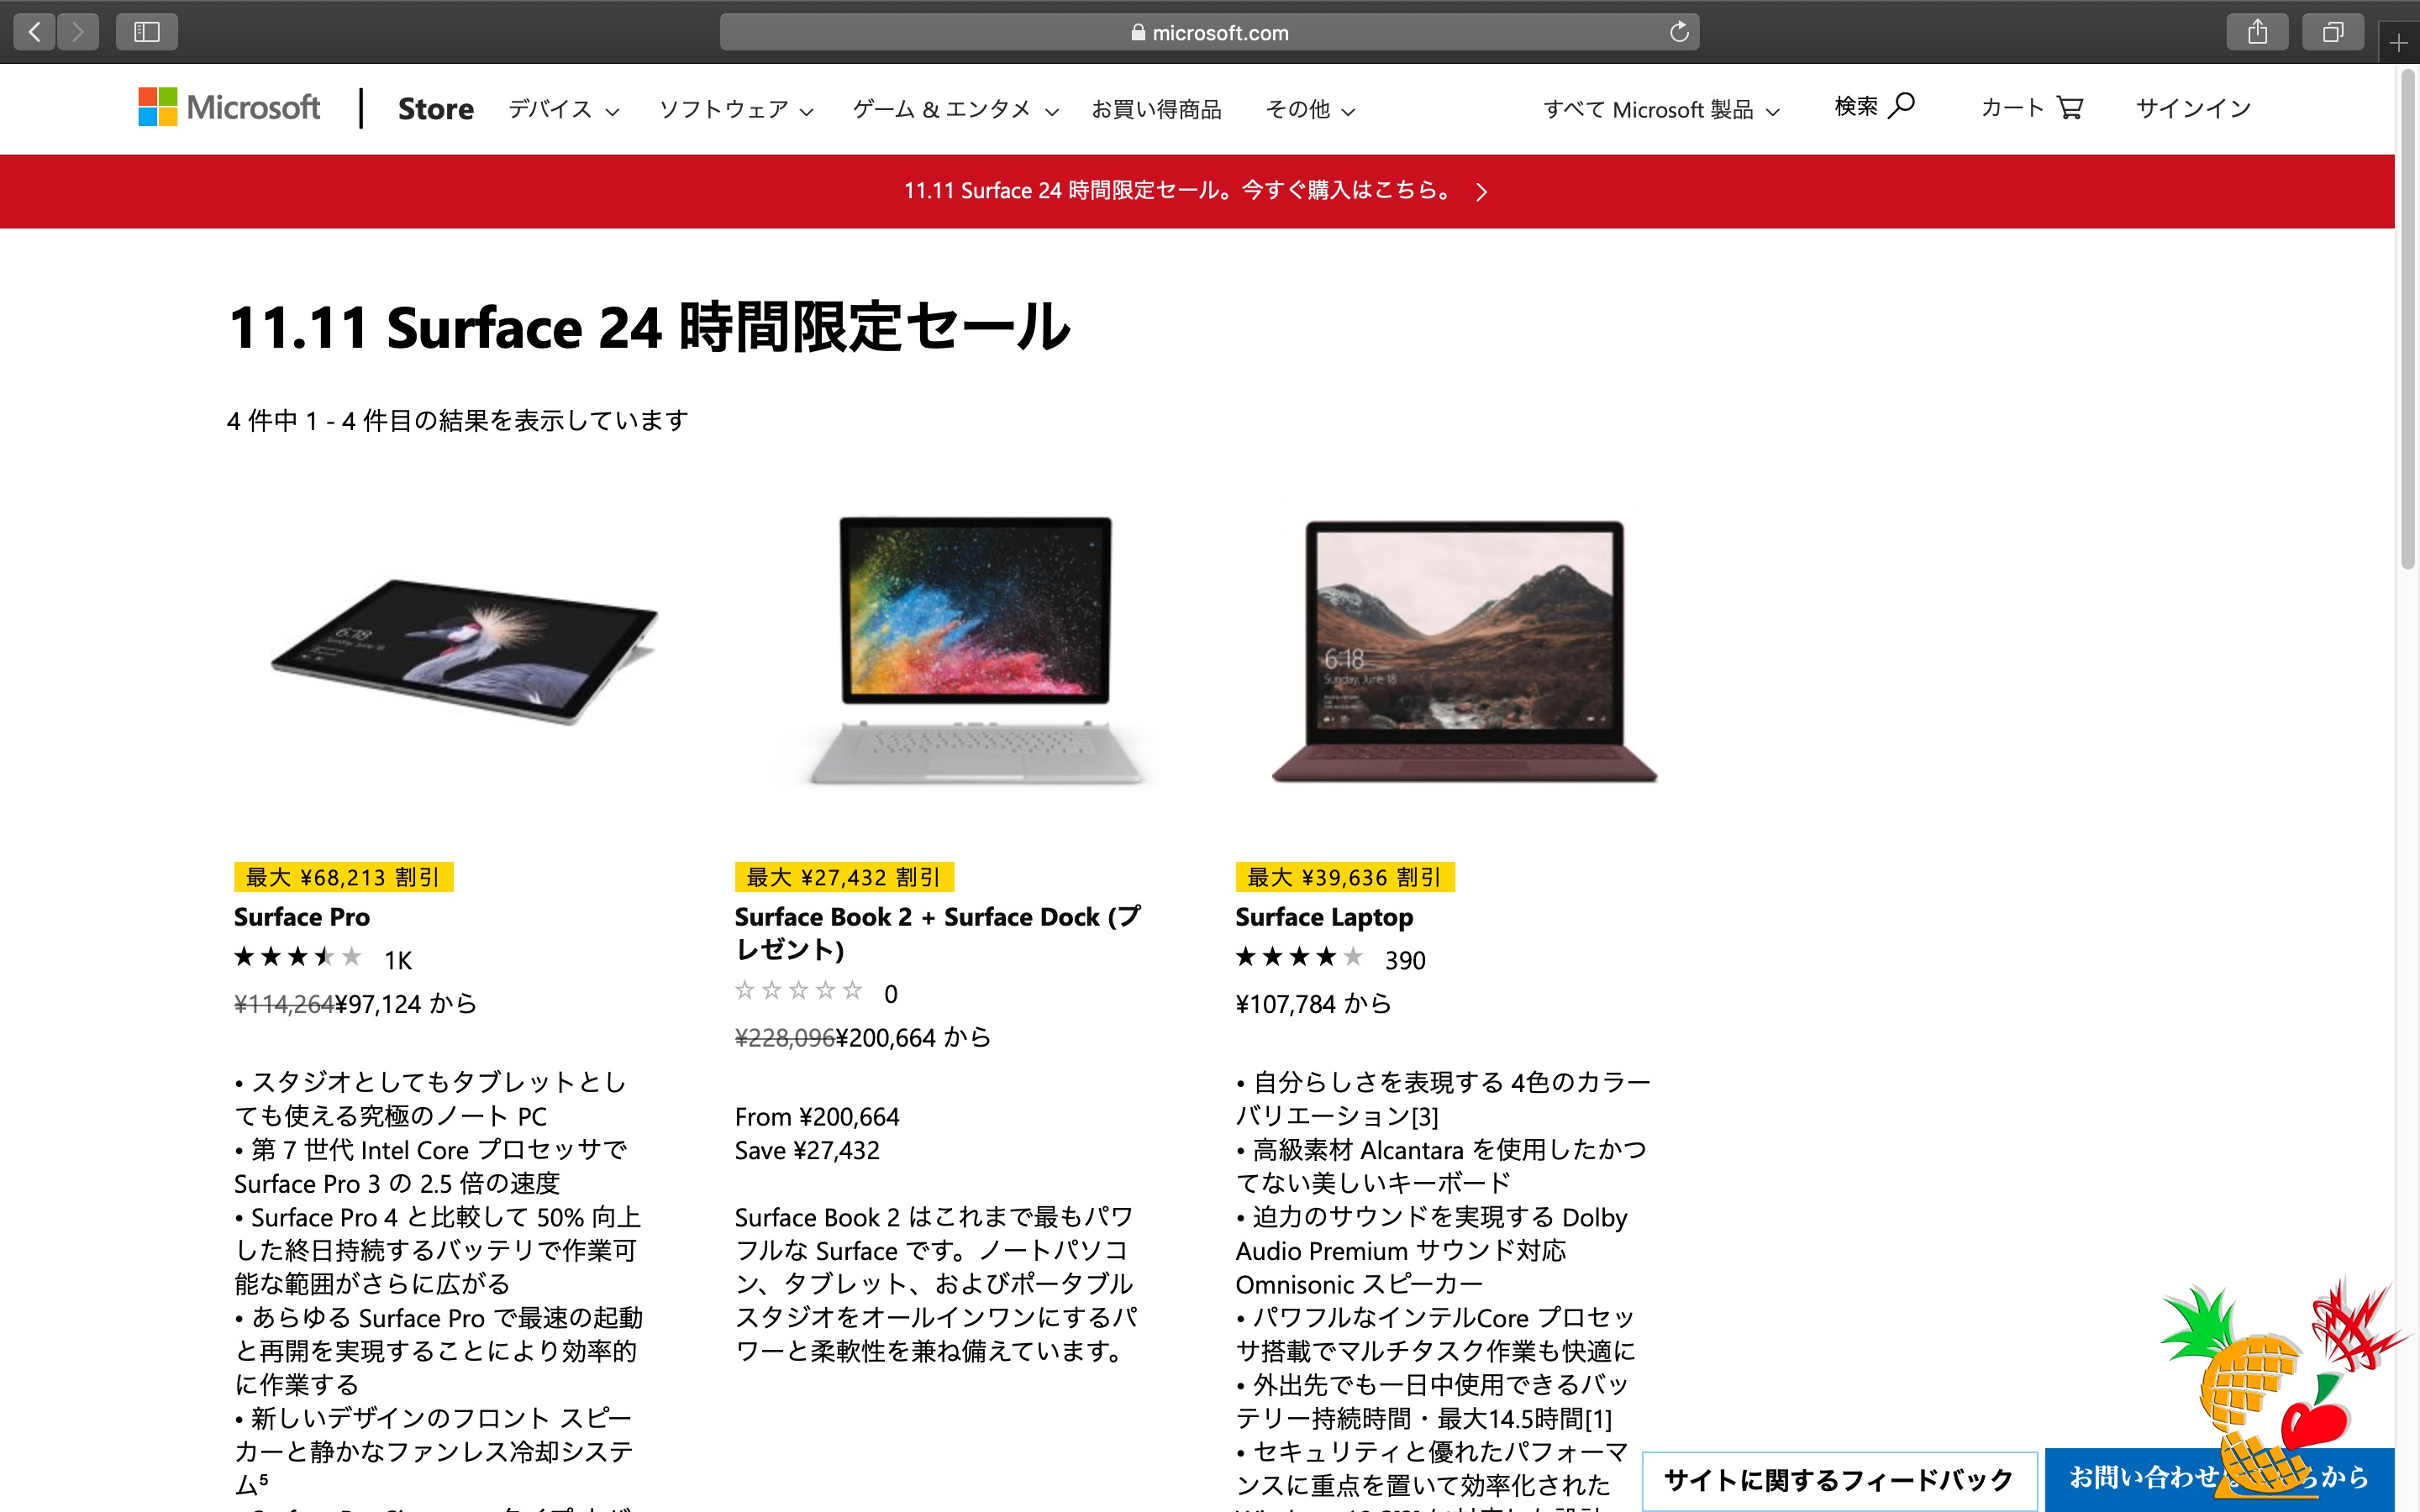 11.11 Surface 24 時間限定セール